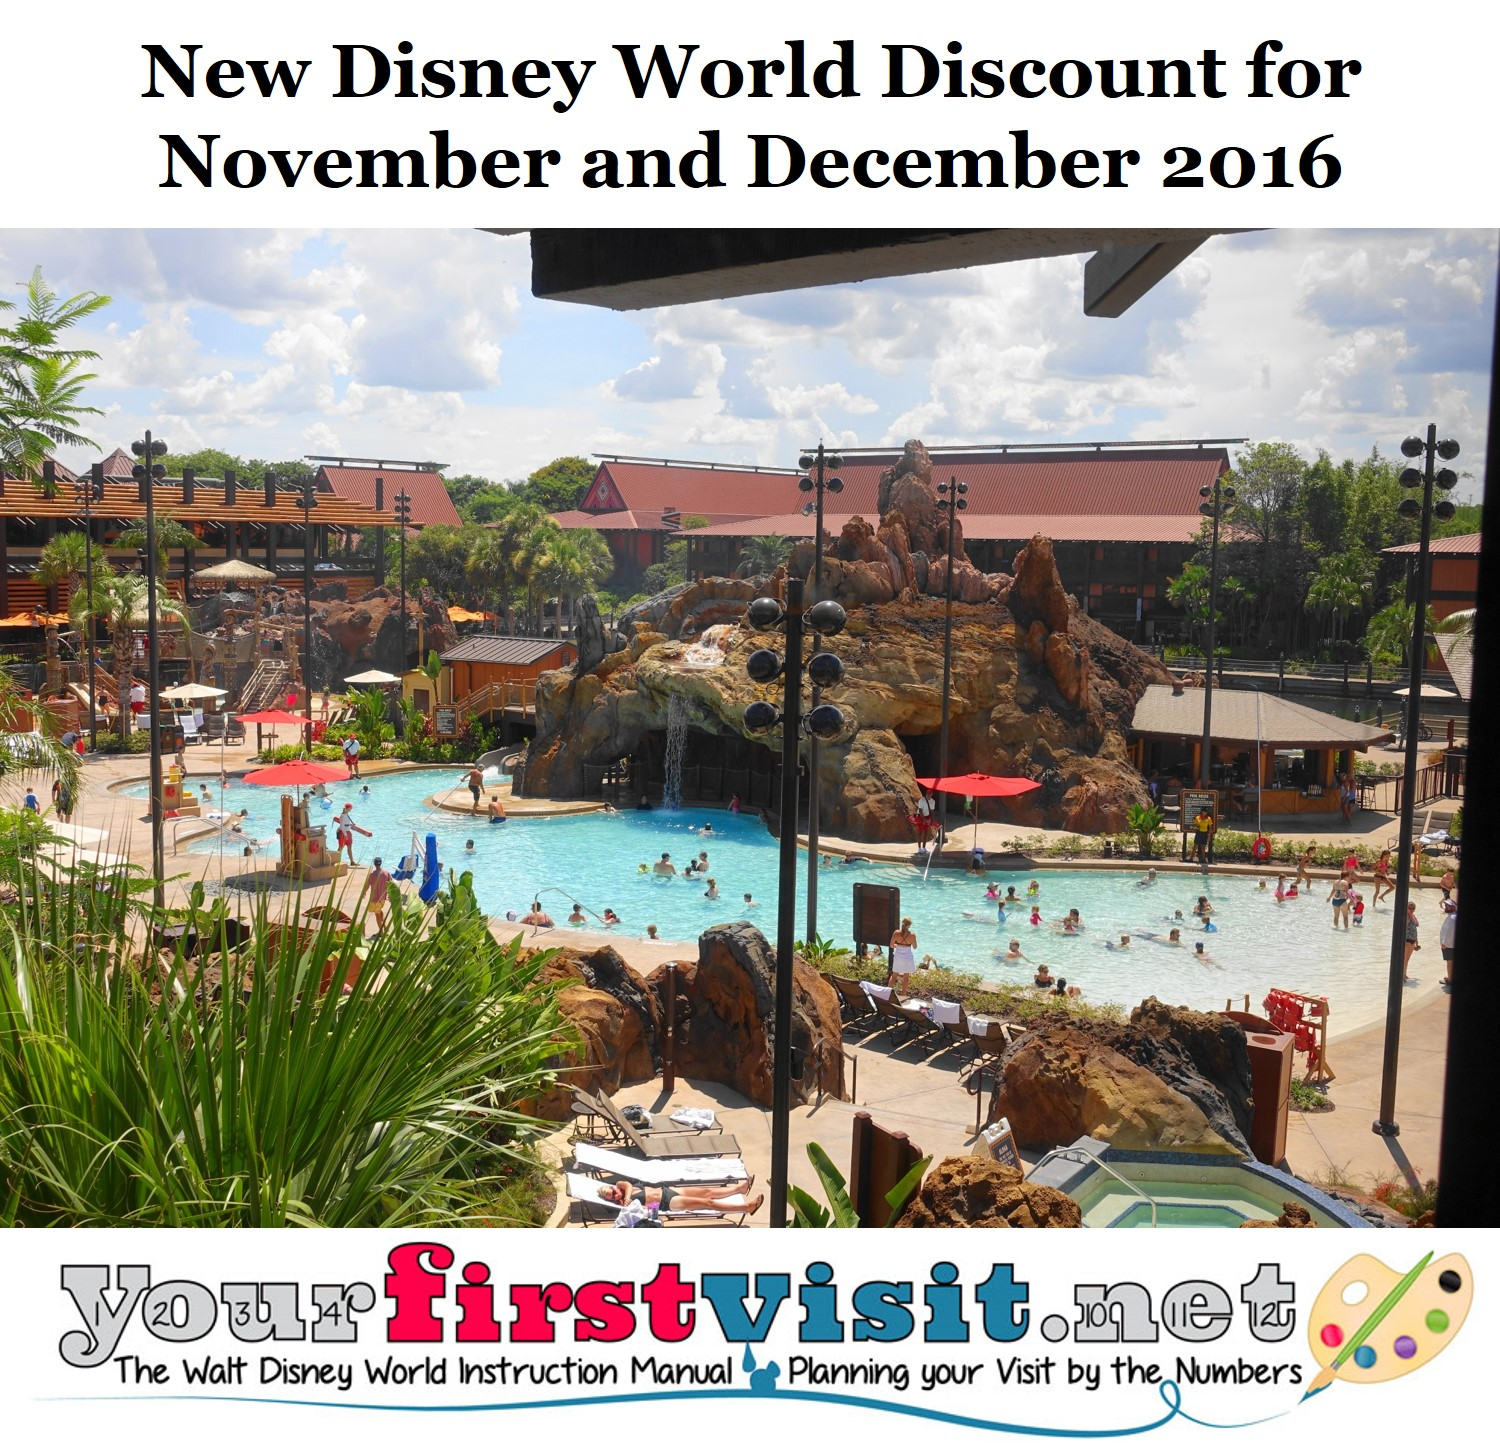 New Disney World Discount for Many Dates in November and December 2016 from yourfirstvisit.net